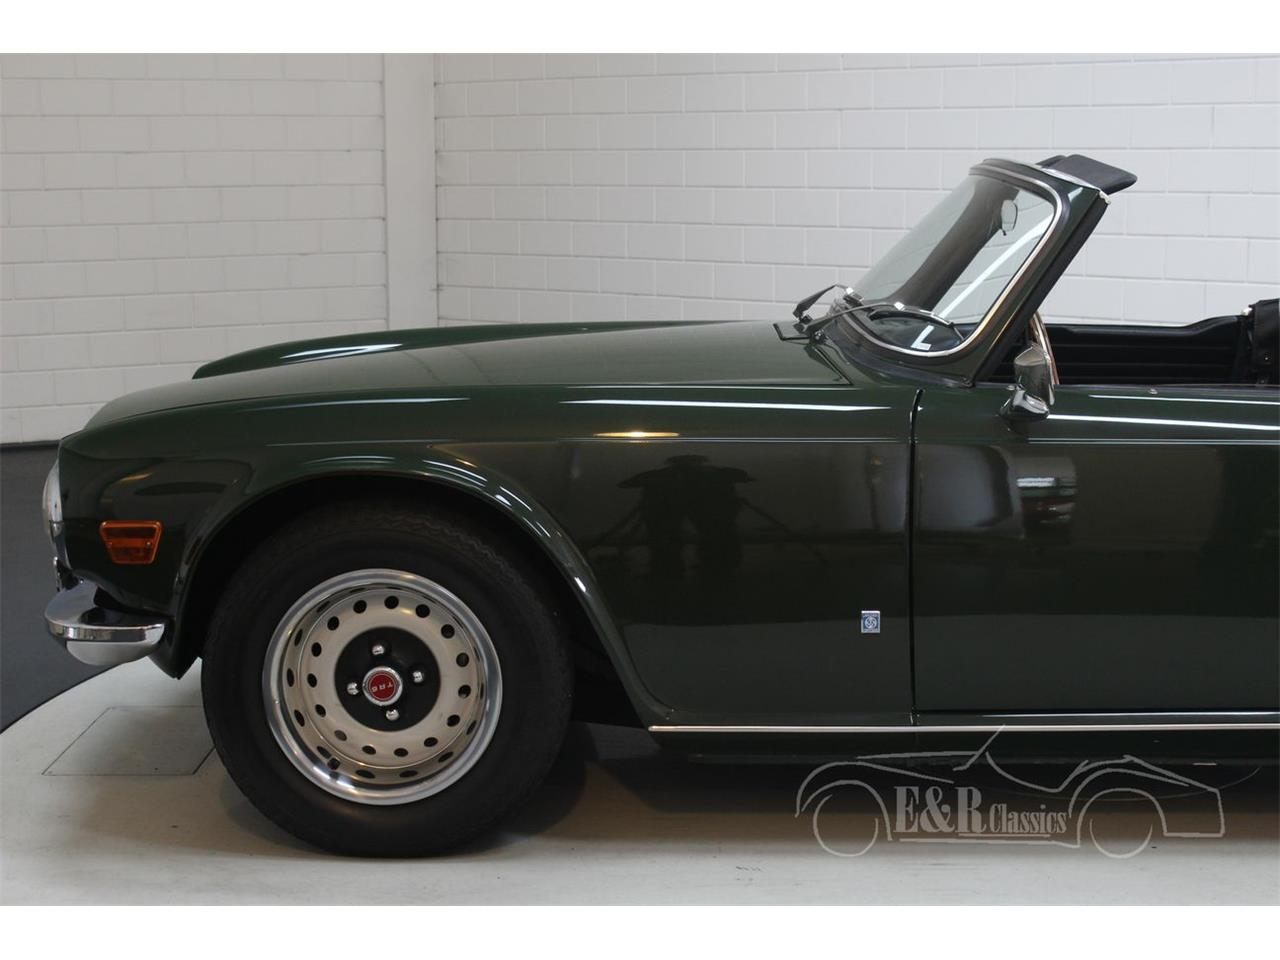 Large Picture of Classic '69 TR6 located in Waalwijk Noord Brabant - $33,700.00 Offered by E & R Classics - PWOE